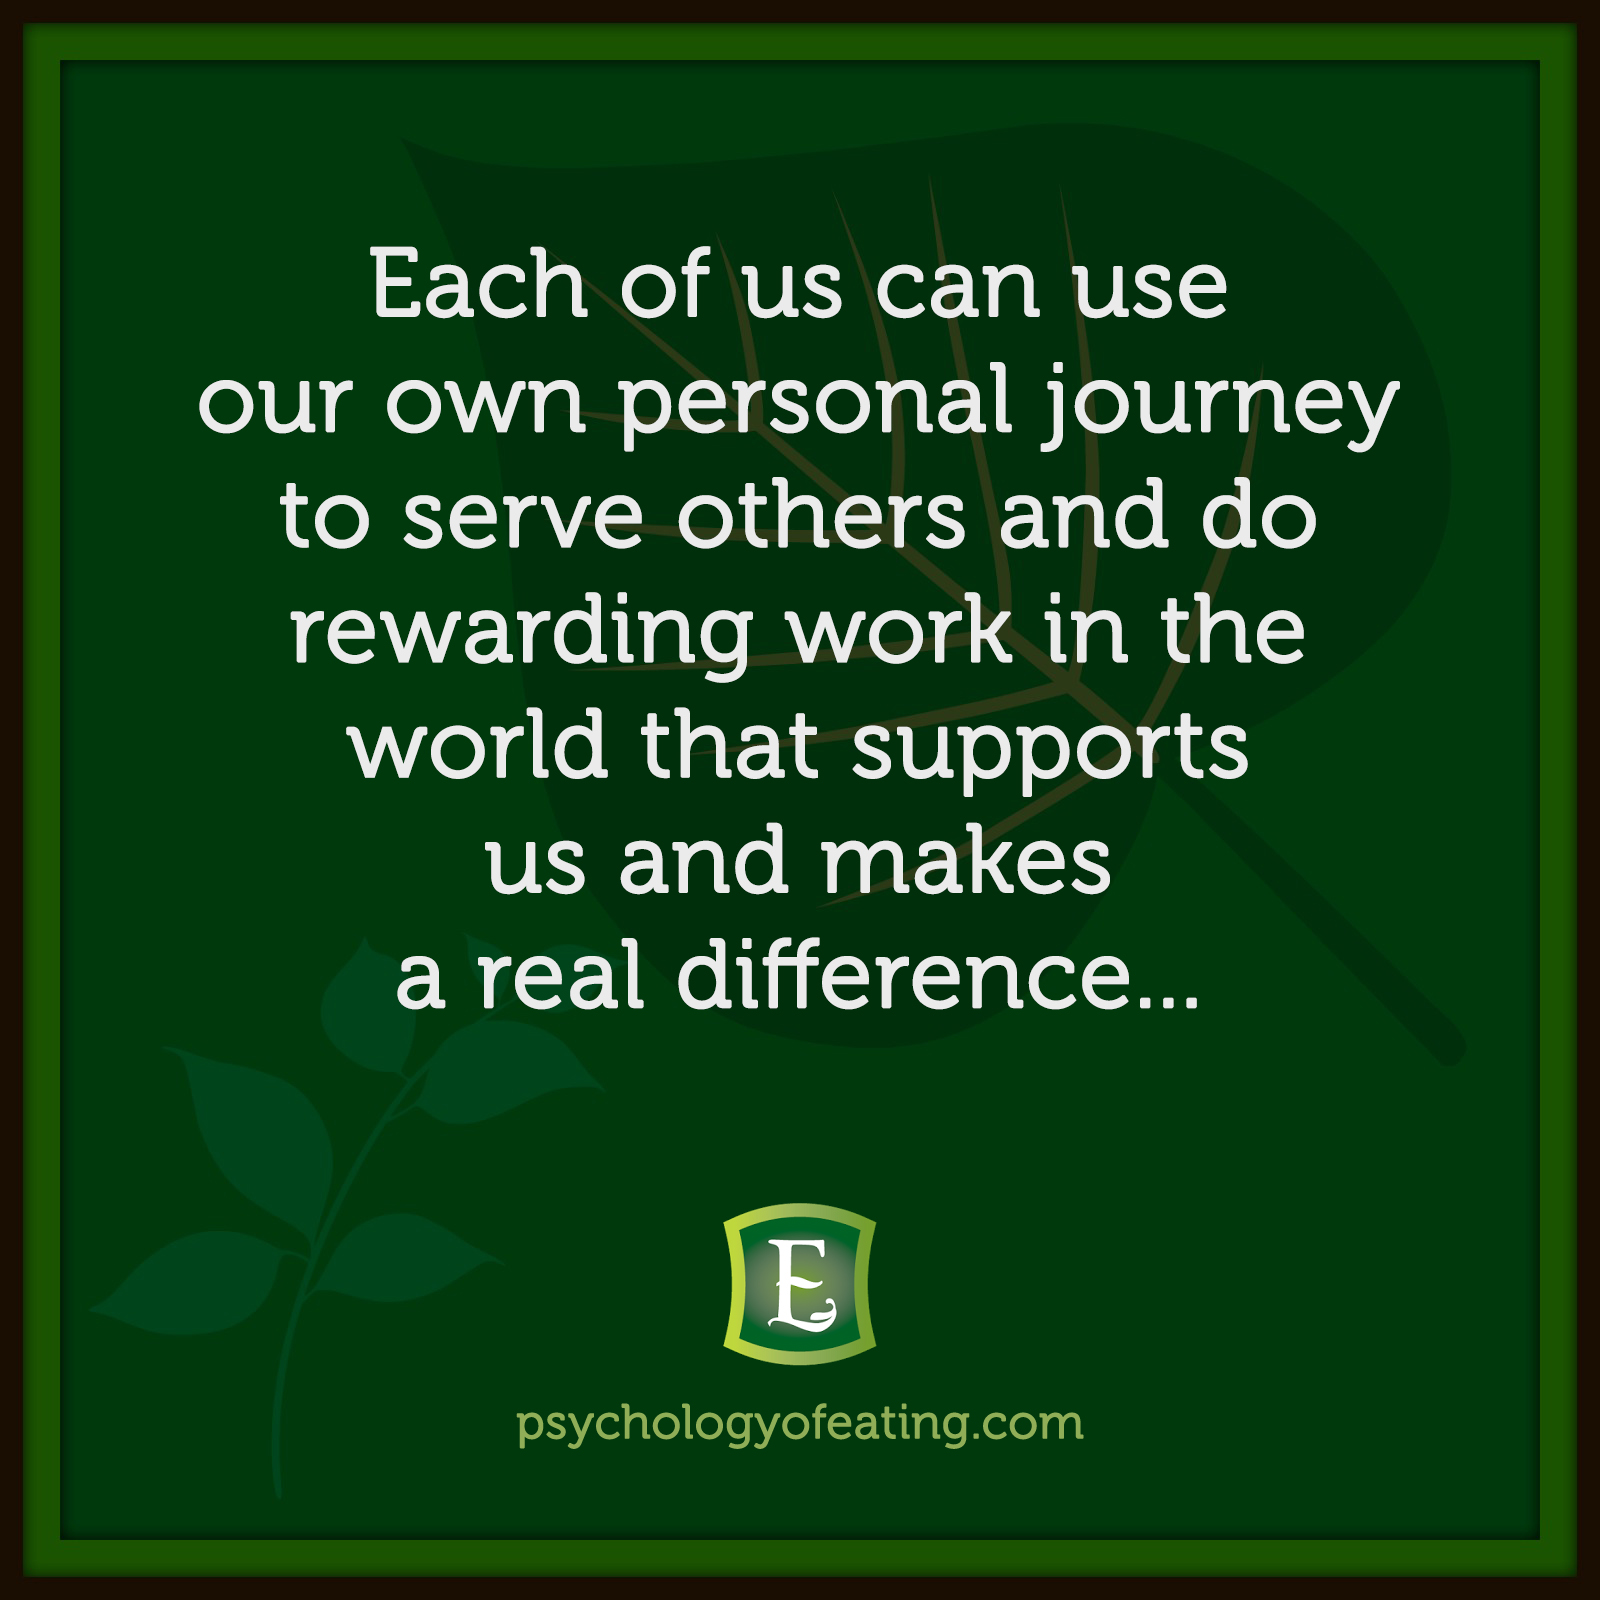 Each of us can use our own personal journey to serve others and do rewarding work in the world that supports us and makes a real difference... #health #nutrition #eatingpsychology #IPE